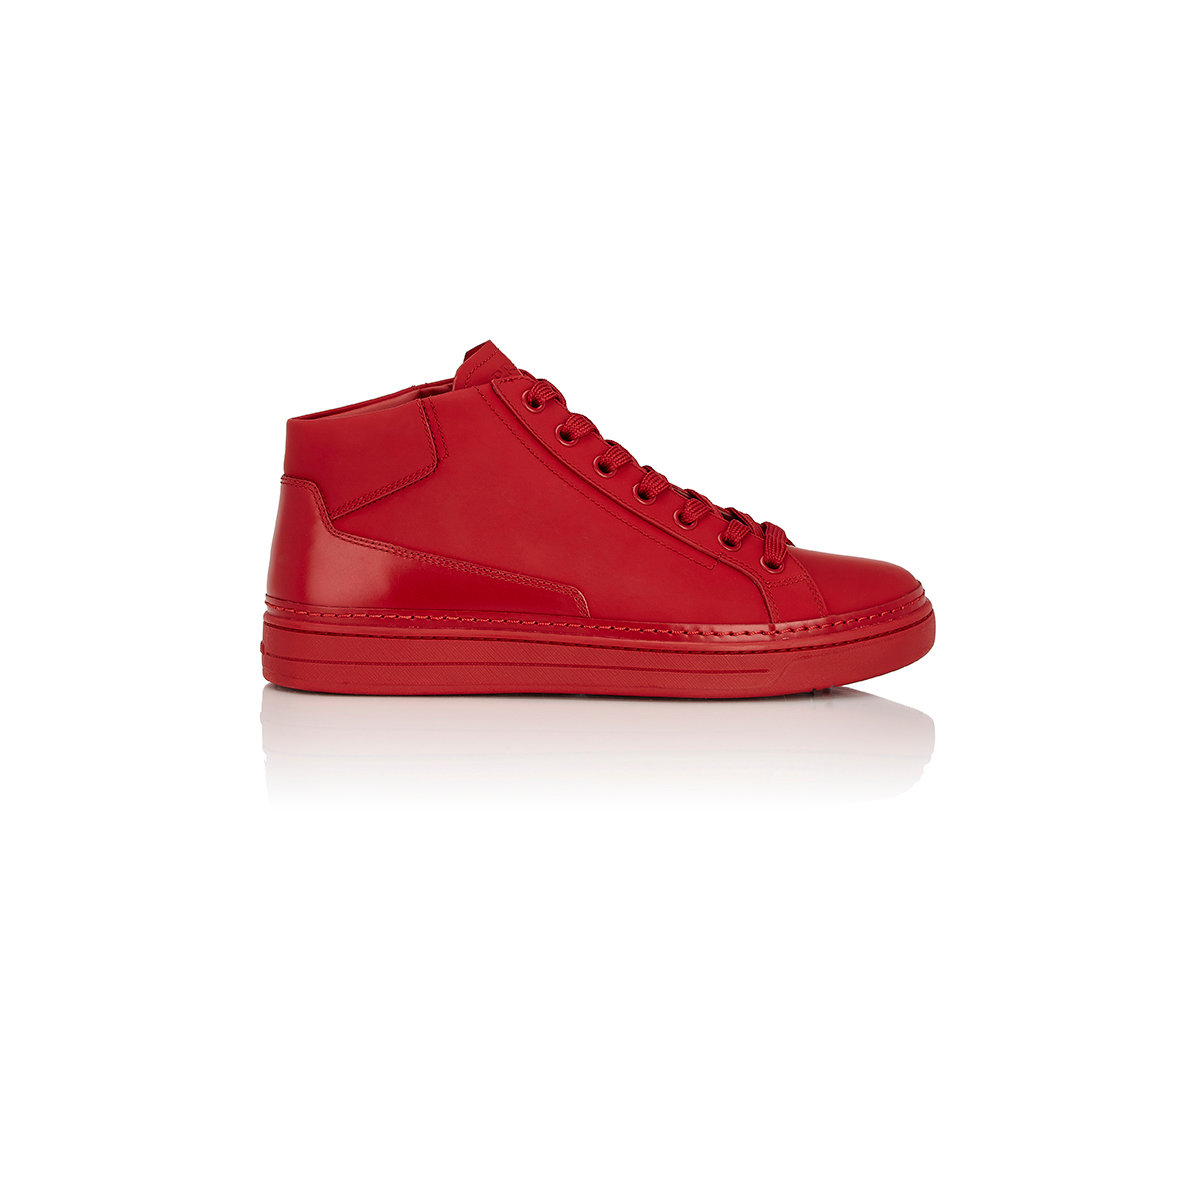 1f1be08619dc ... clearance lyst prada mens monochrome mid top sneakers in red bd8b7 5b6eb